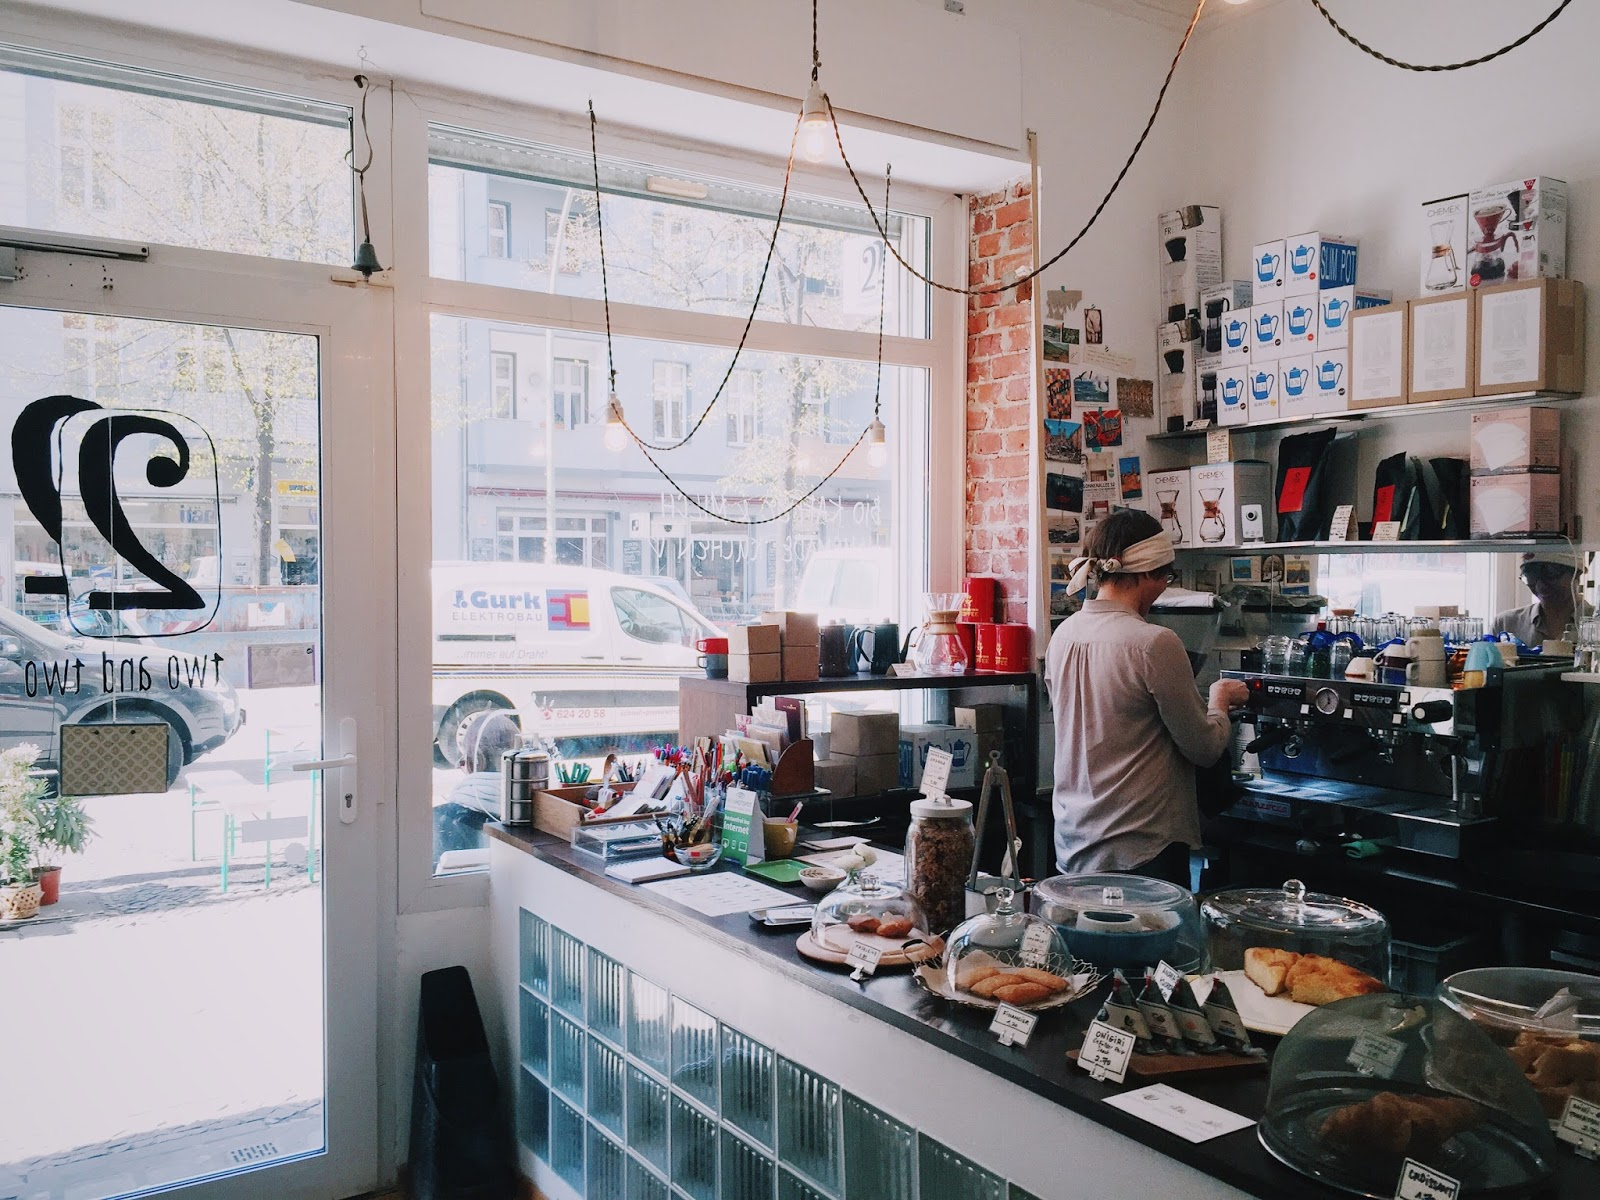 Two and Two: A Work-Friendly Place in Berlin